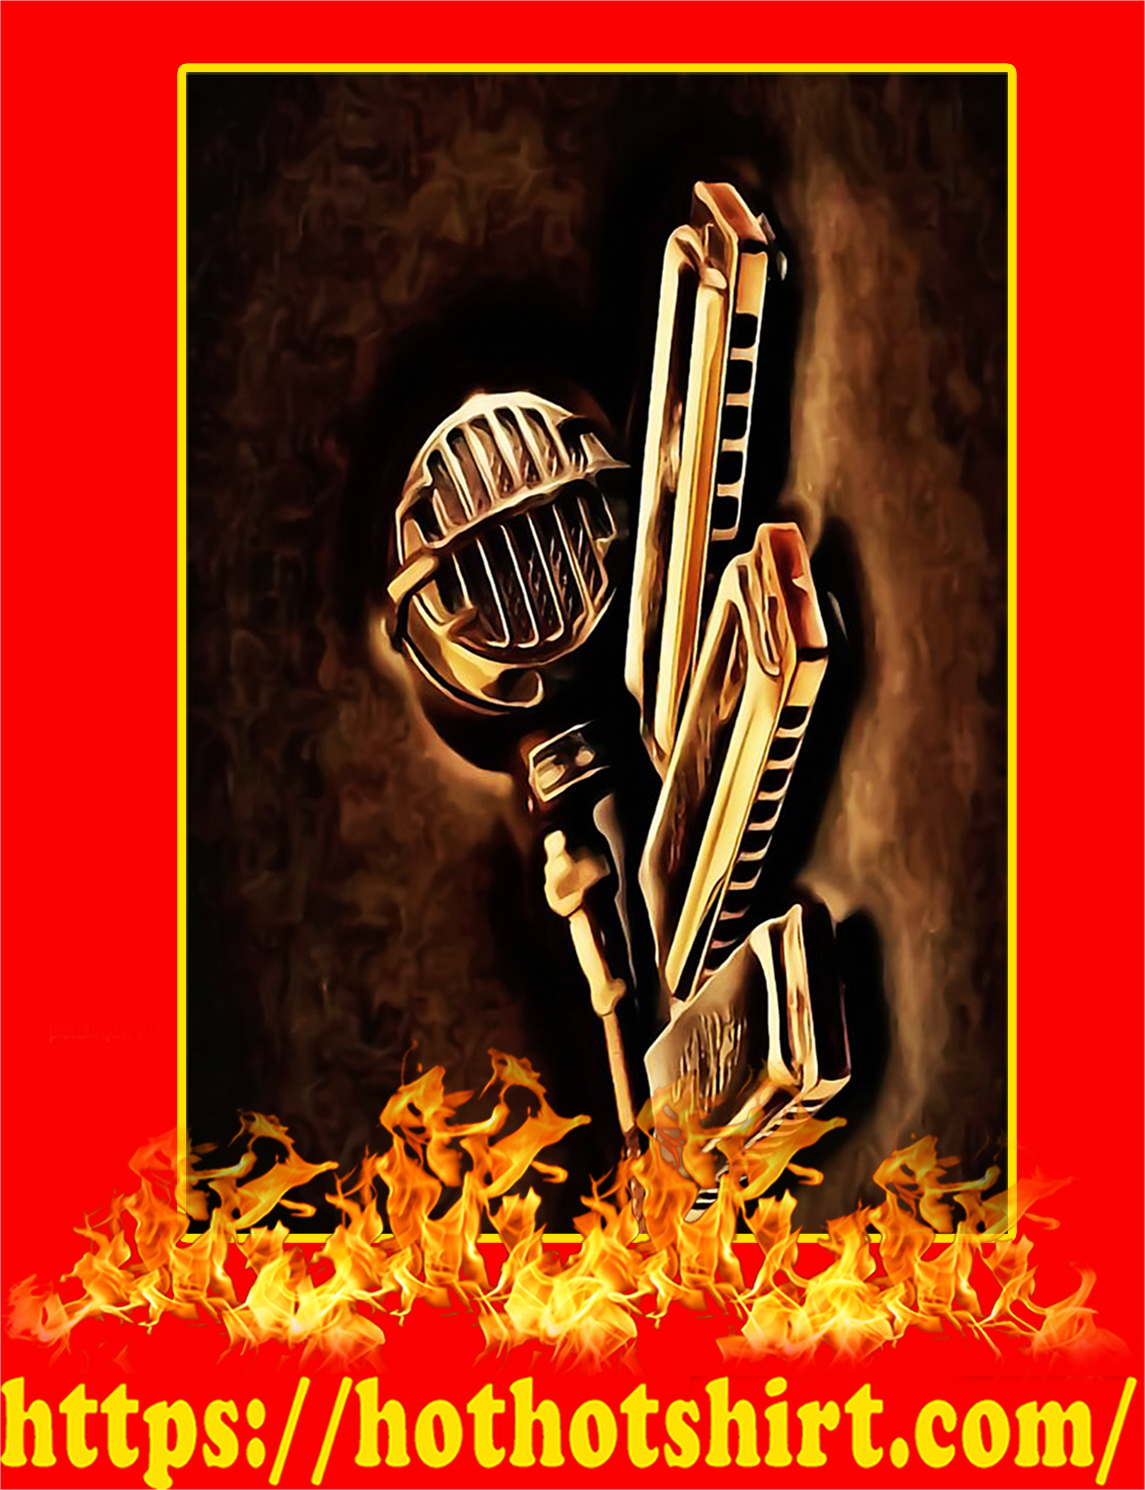 Harmonica Vintage Poster - A1